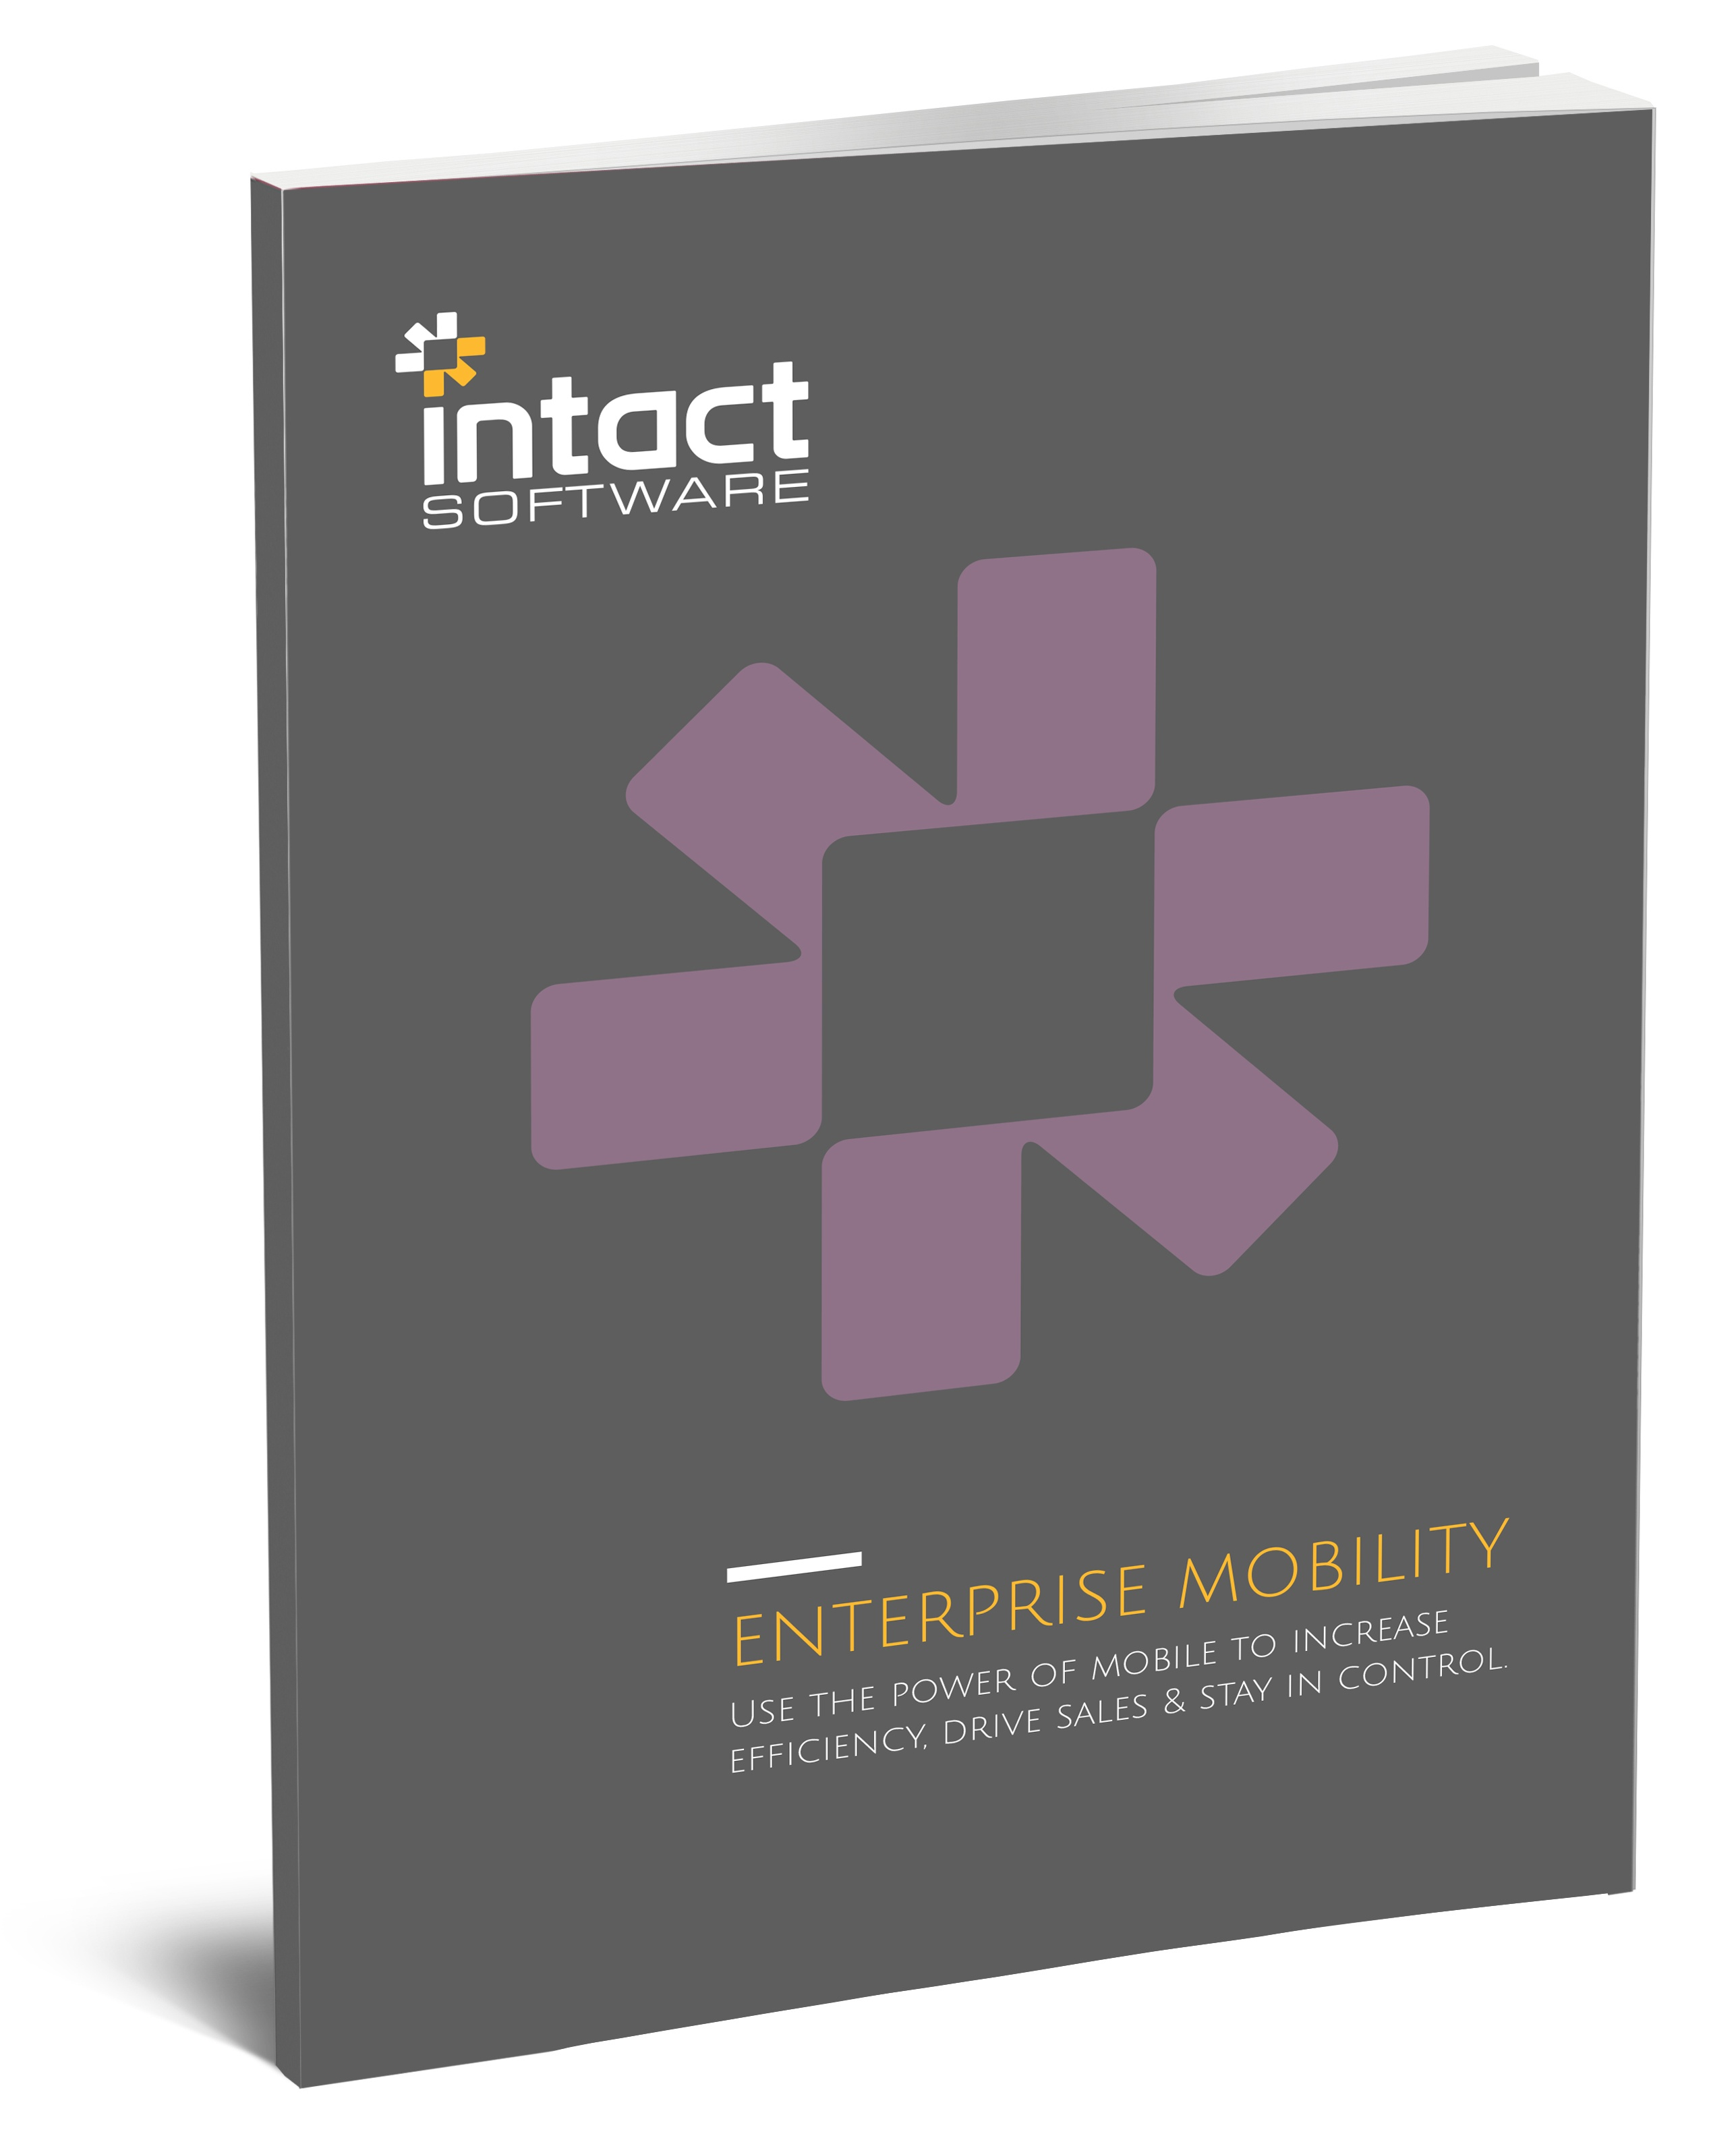 Enterprise Mobility_Intact Insights.jpg